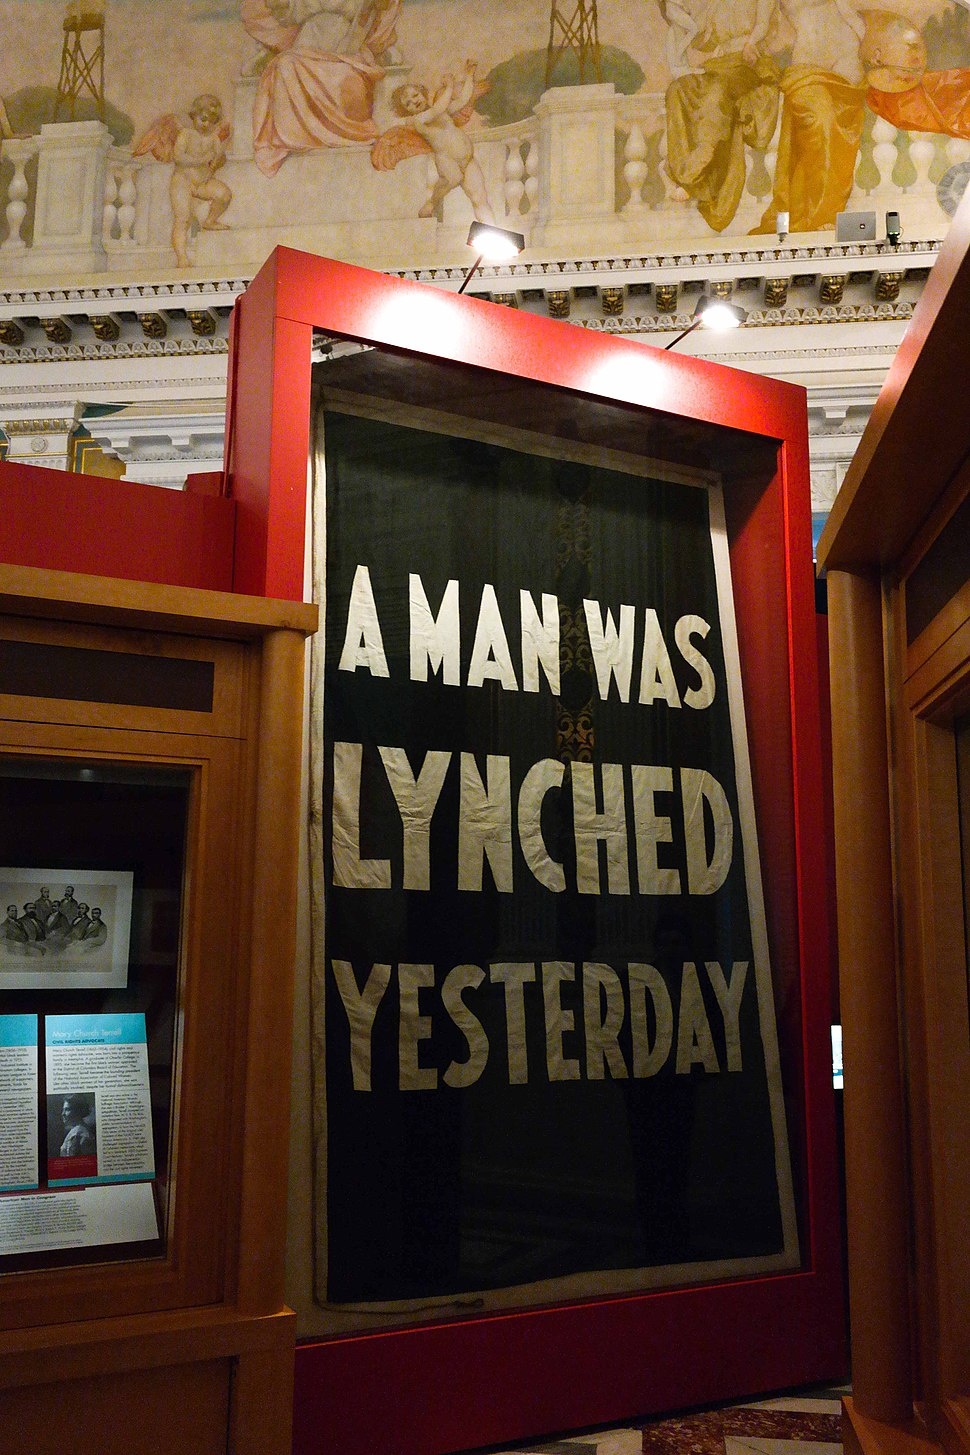 A Man Was Lynched Yesterday